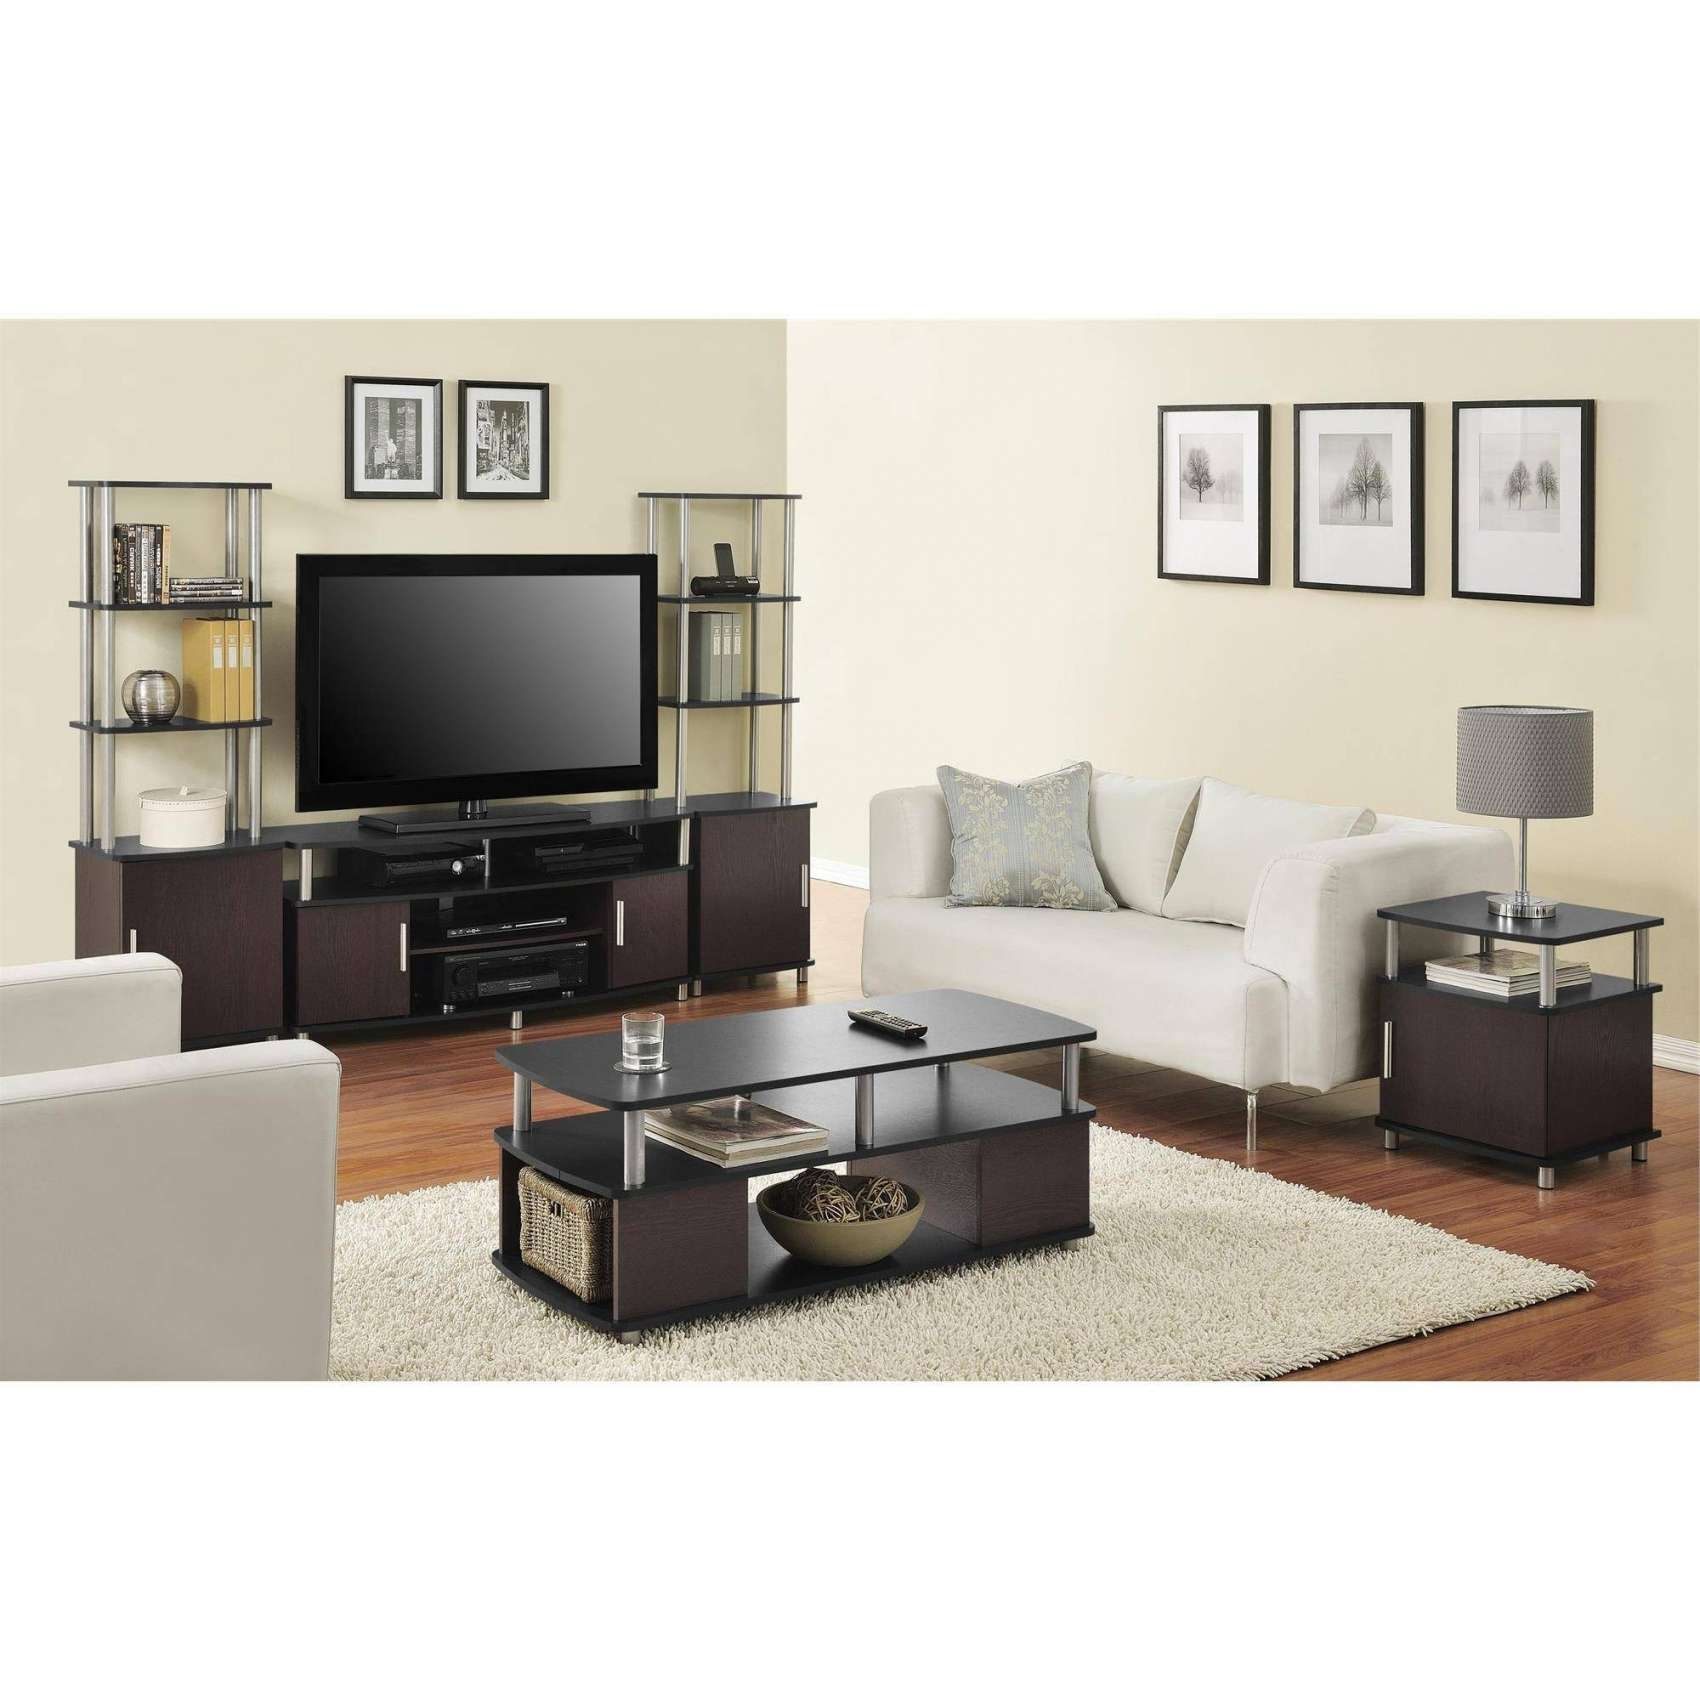 Coffee Table : Magnificent Outdoor Tv Cabinet Tv Table Stand Tv In Tv Cabinets And Coffee Table Sets (View 5 of 20)